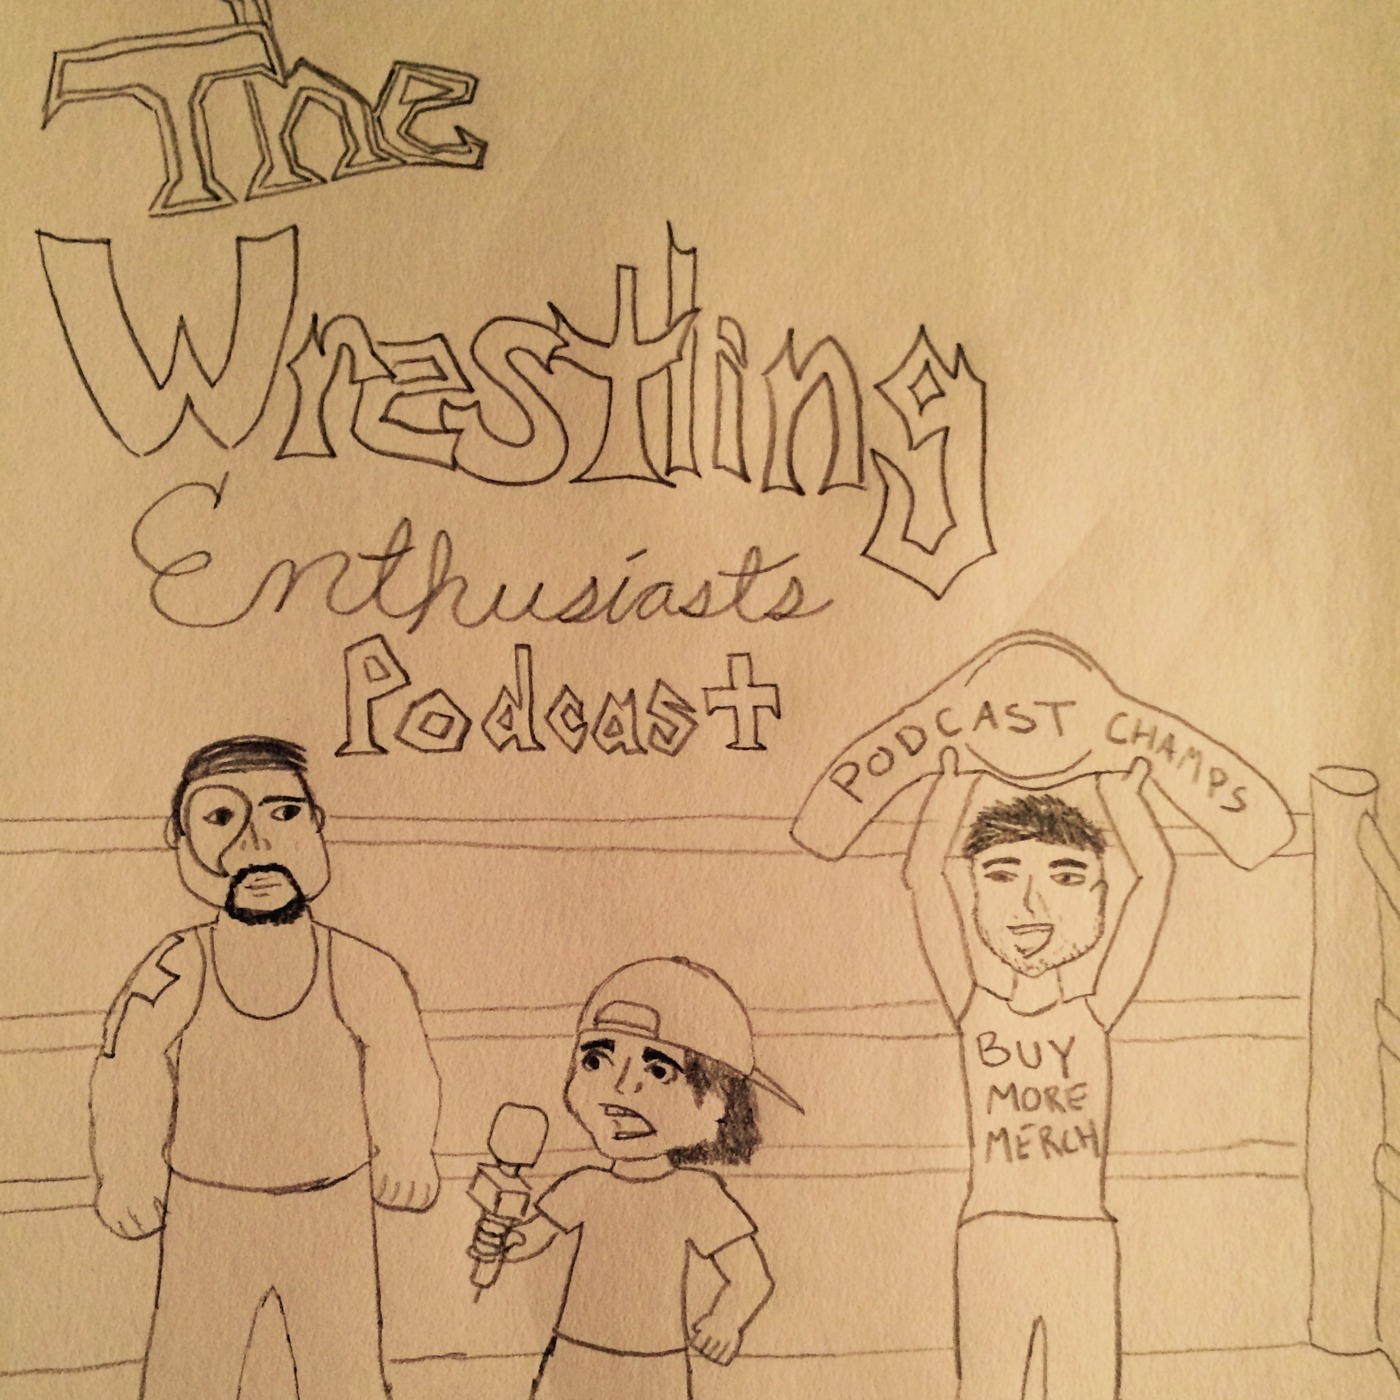 Wrestling Enthusiasts' Podcast